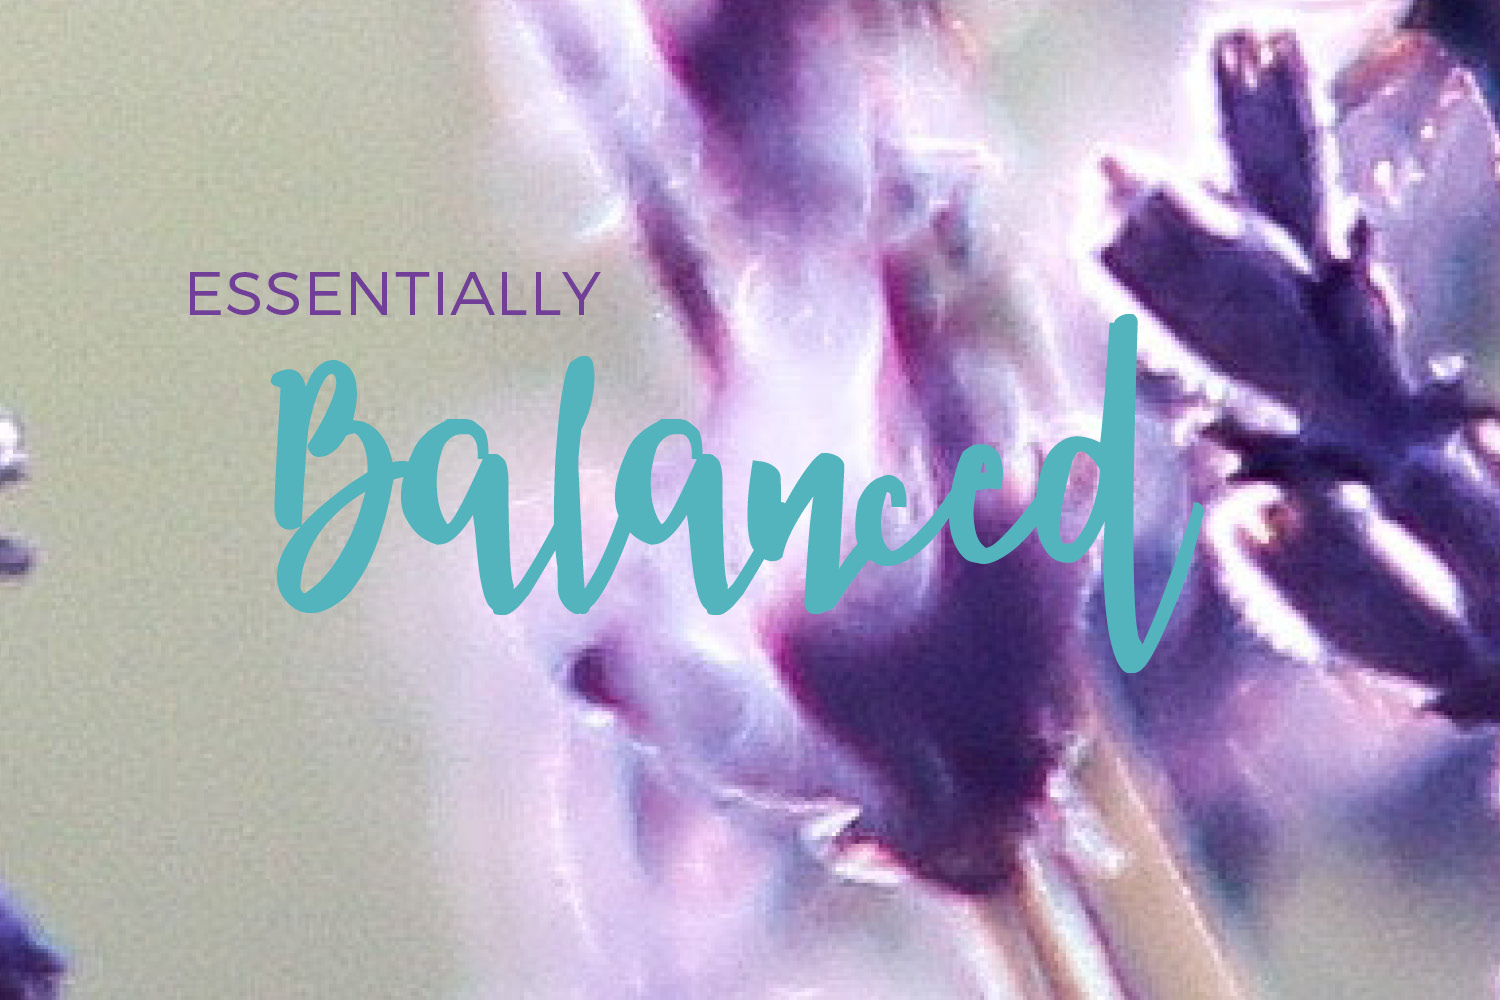 EssentiallyBalanced - doterra essential oils - how to use doterra - how to use essential oils - what are essential oils - doterra wellness advocate - natural health solutions essential oils.jpg